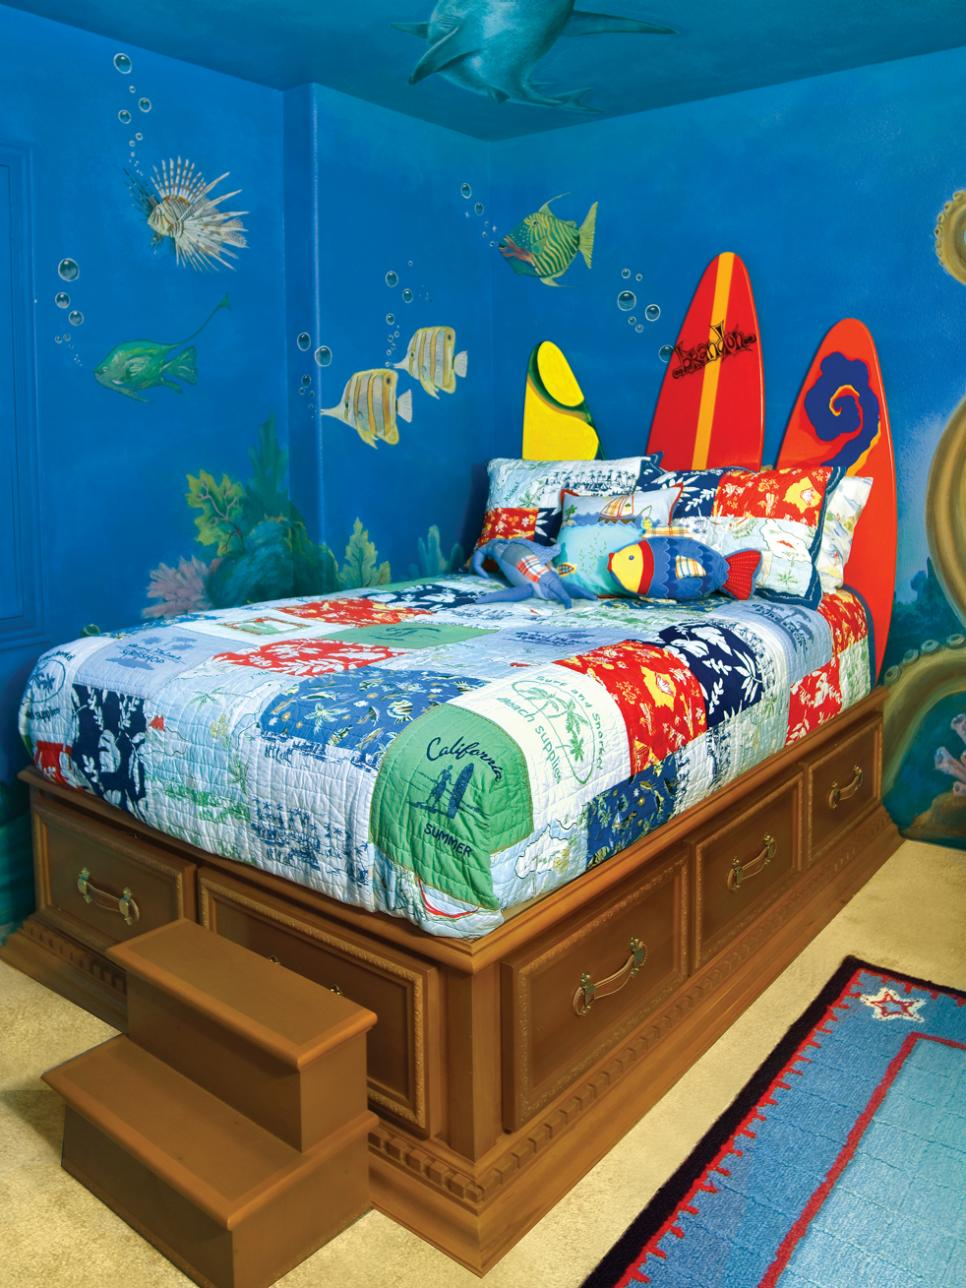 Around The World Decoration Ideas Cool Decoration Ideas For Kids Bedroom Yonohomedesign